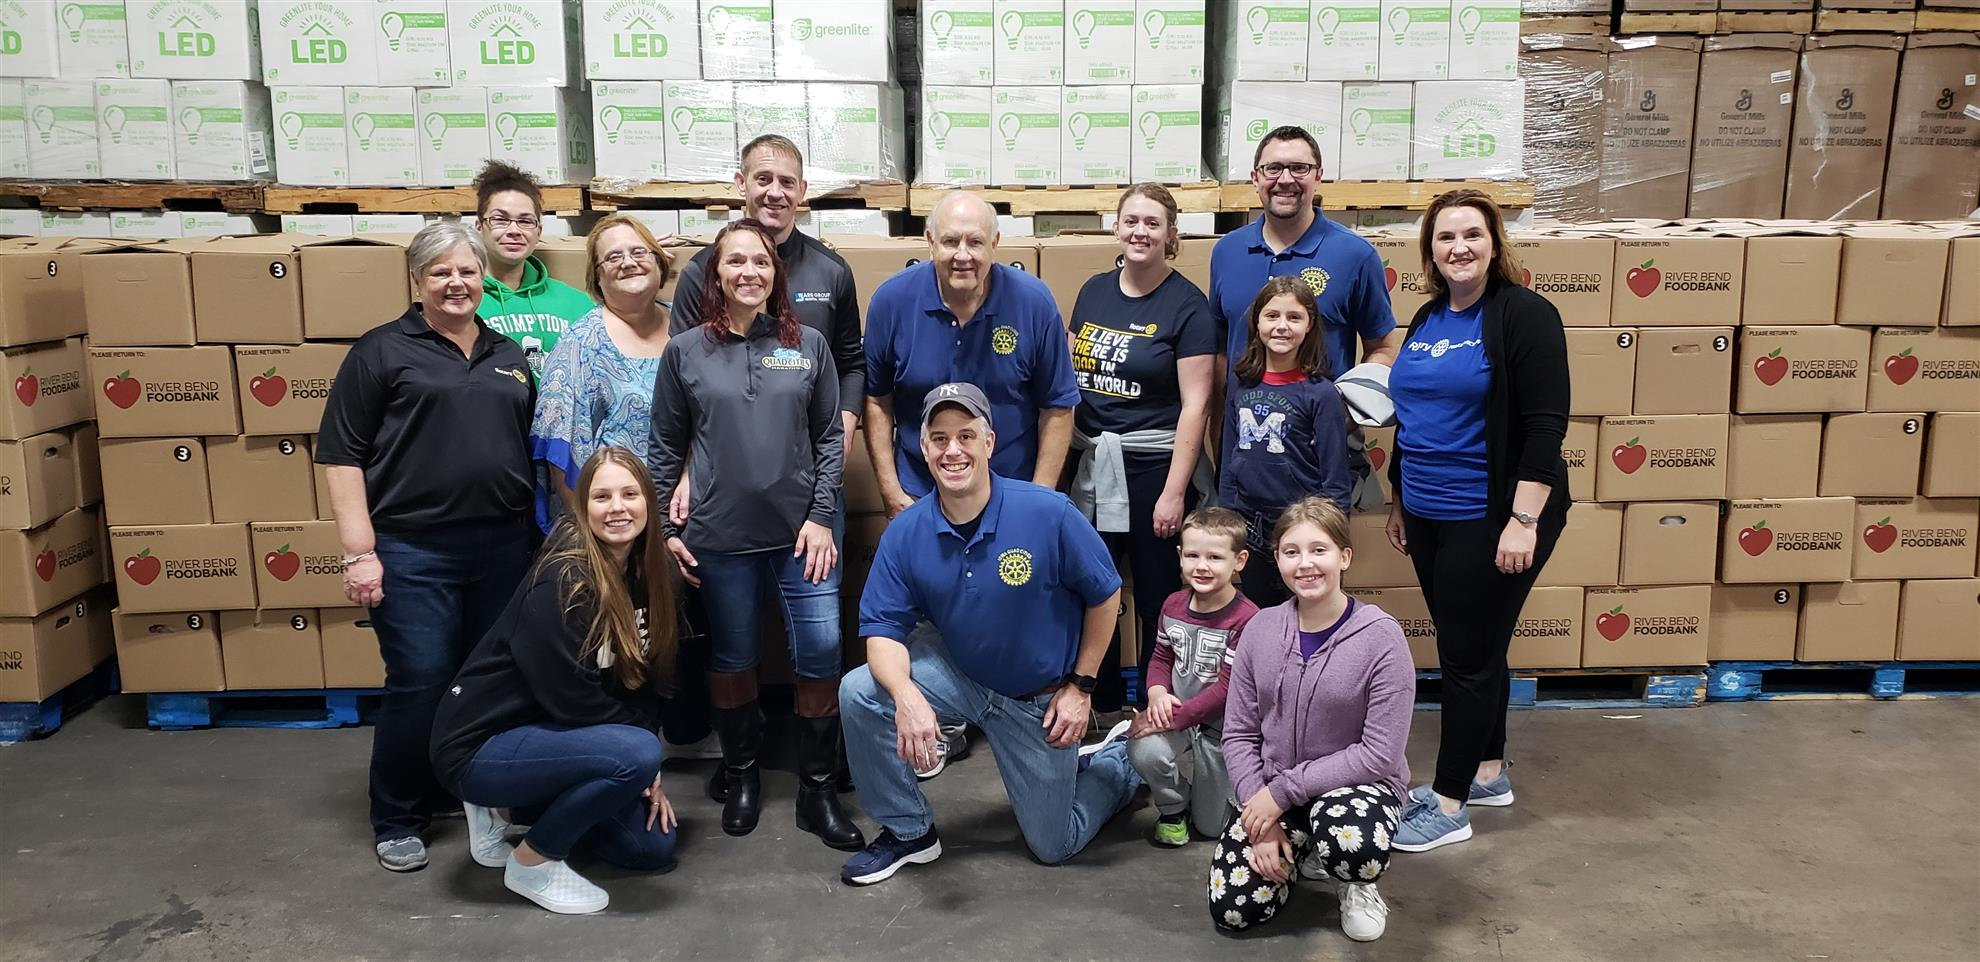 River Bend Foodbank Service Project